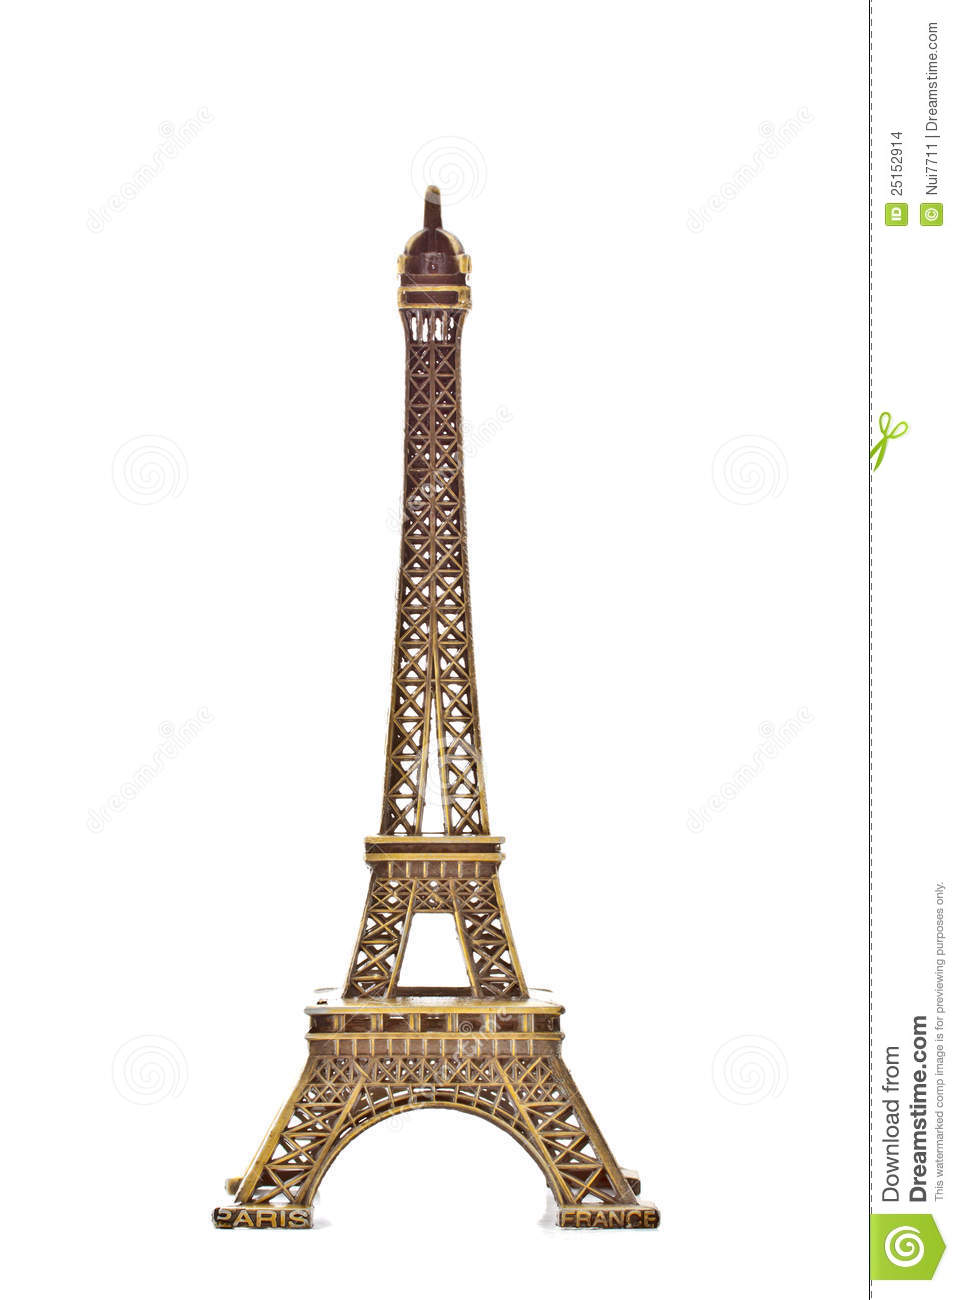 Eiffel Tower Model On White Background 2 Stock Images - Image ...